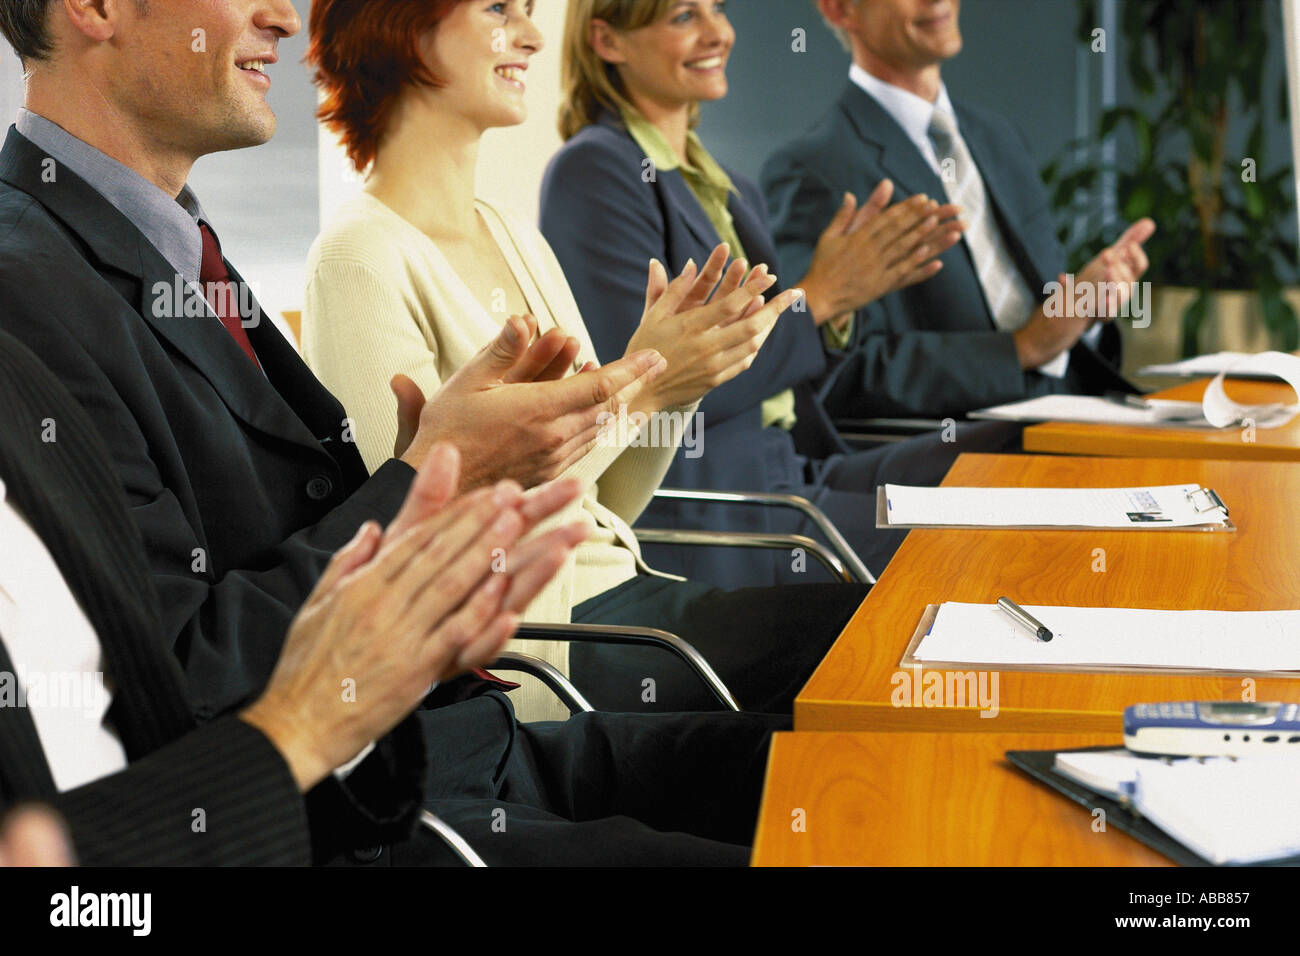 Businesspeople clapping hands - Stock Image